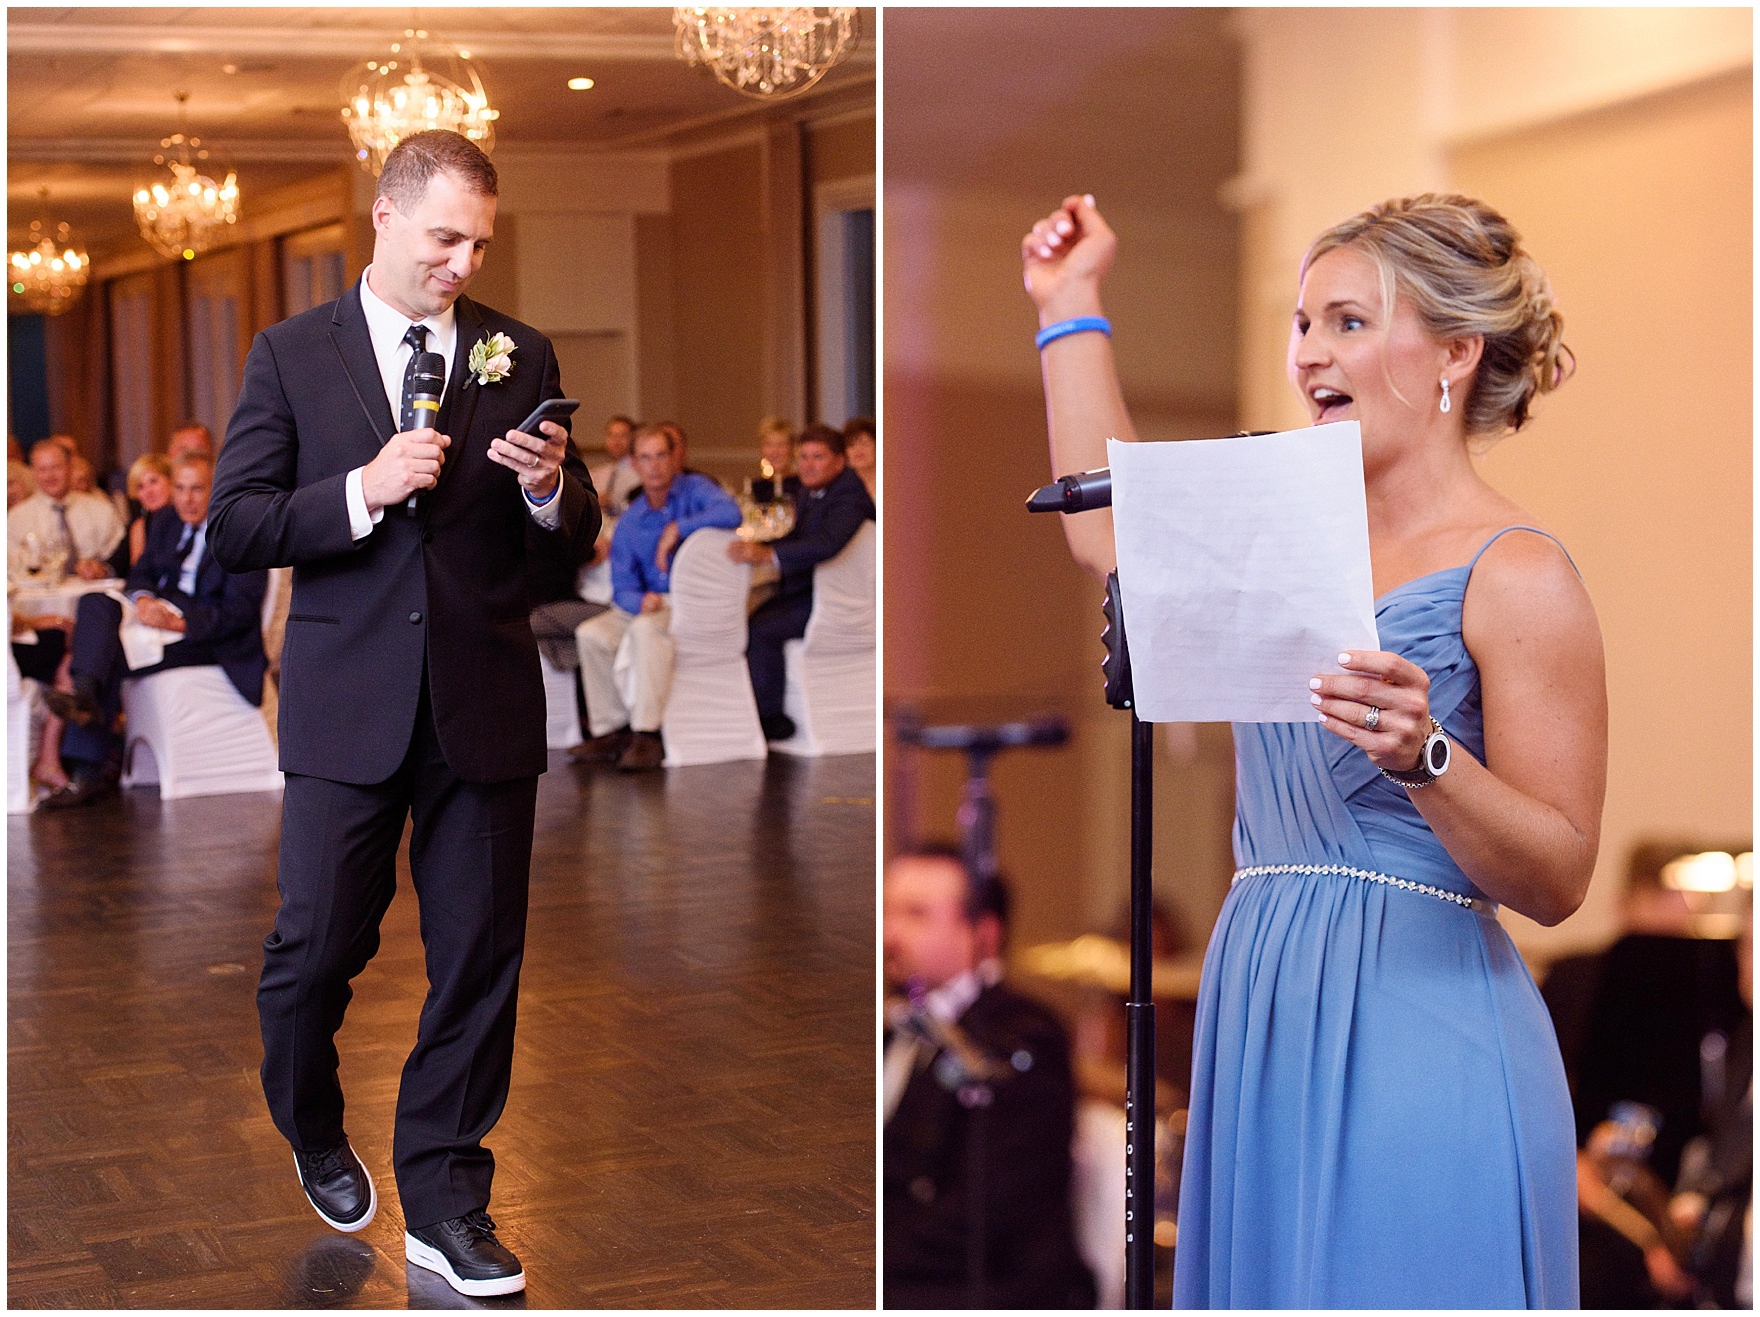 The best man and maid of honor make a toast at an Itasca Country Club Illinois wedding.